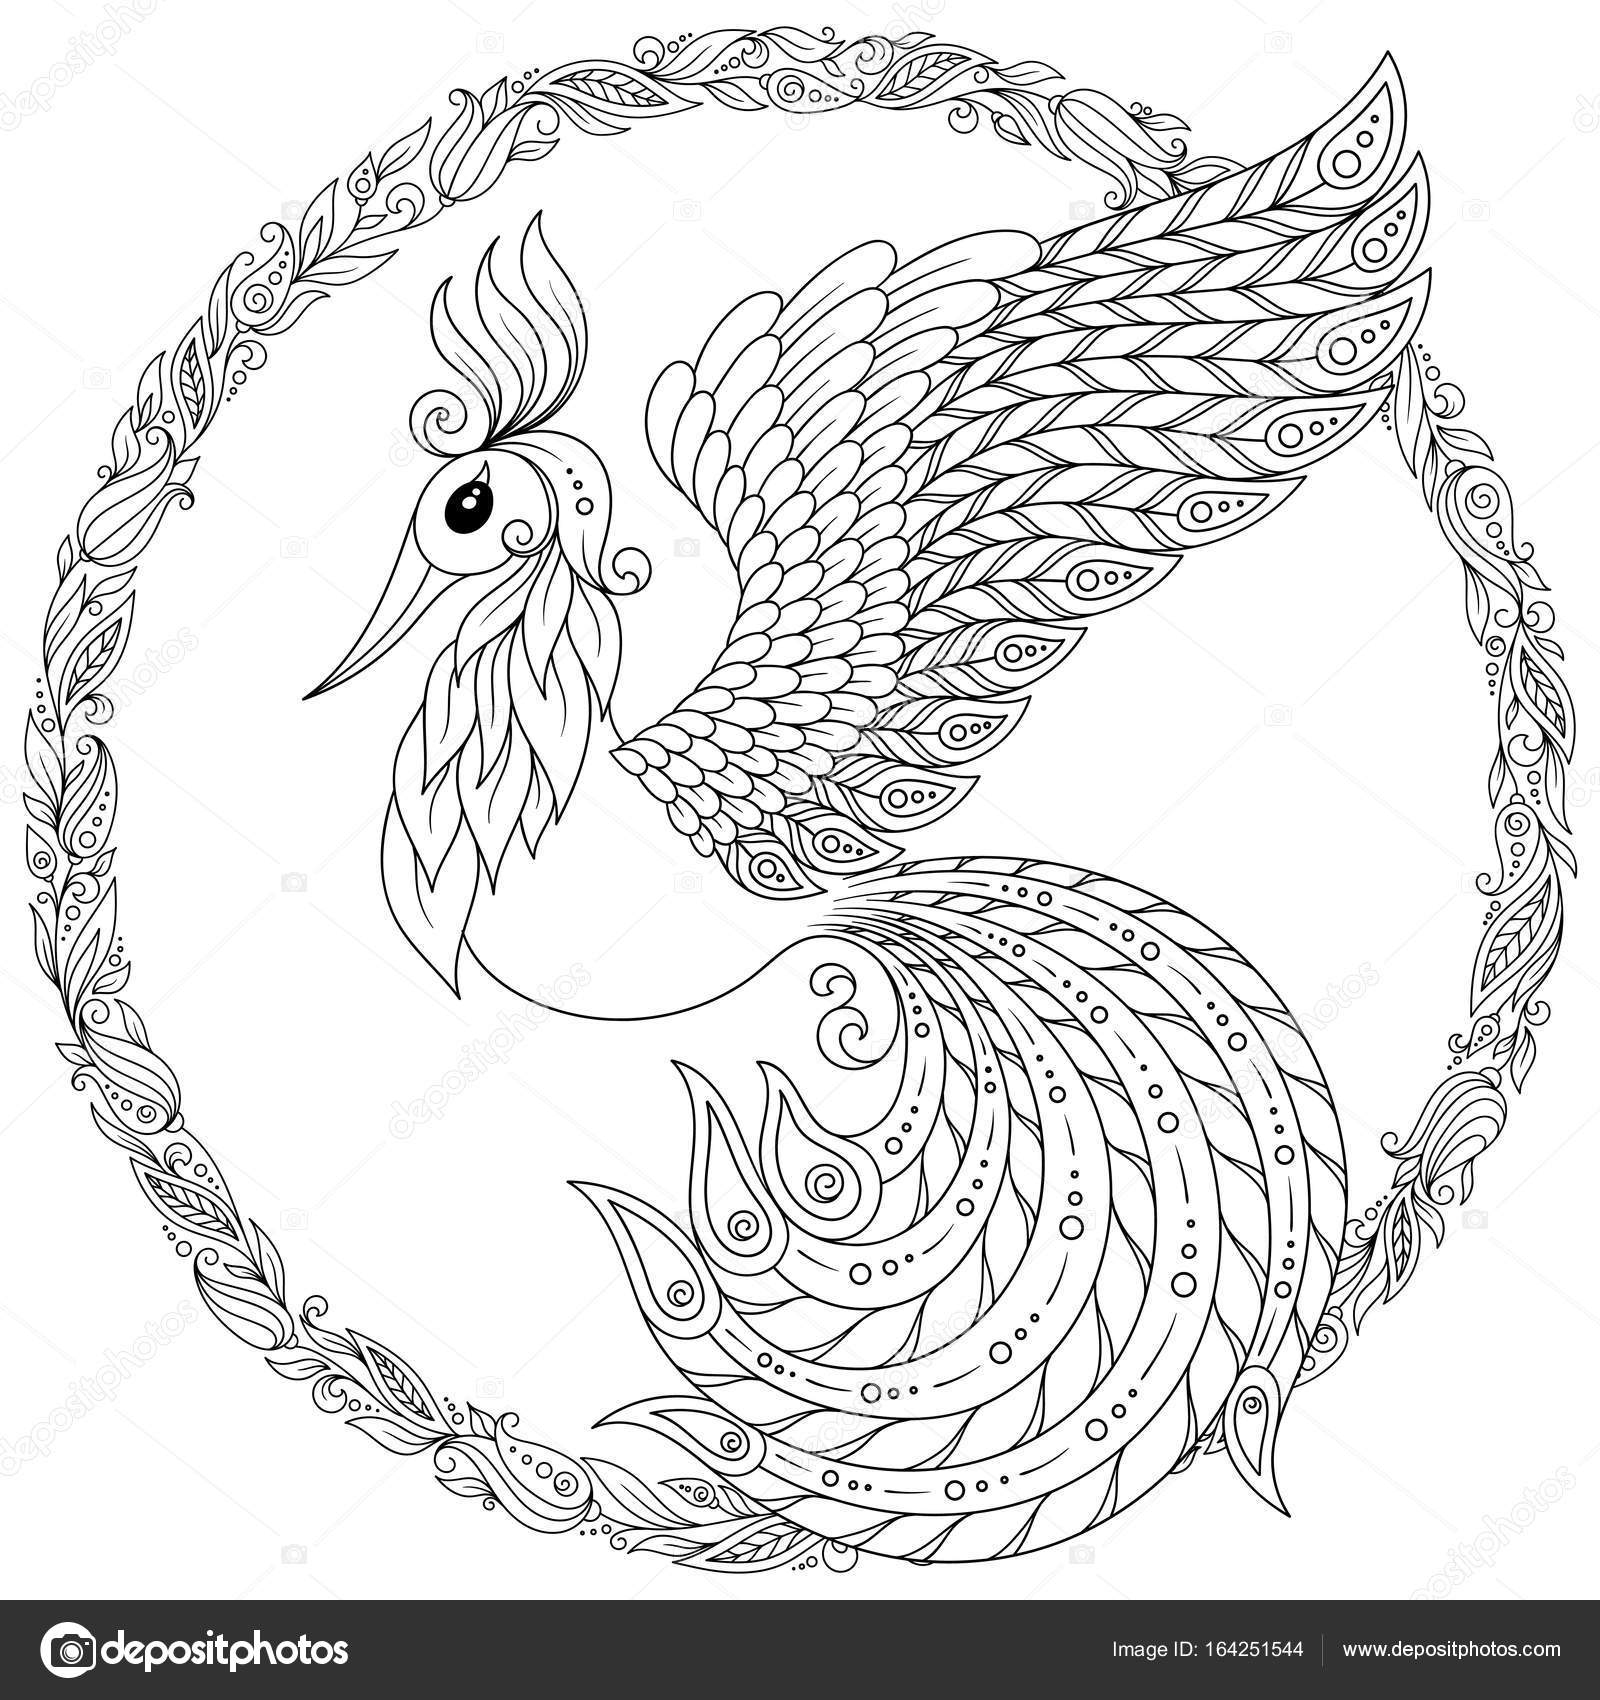 firebird for anti stress coloring page with high details